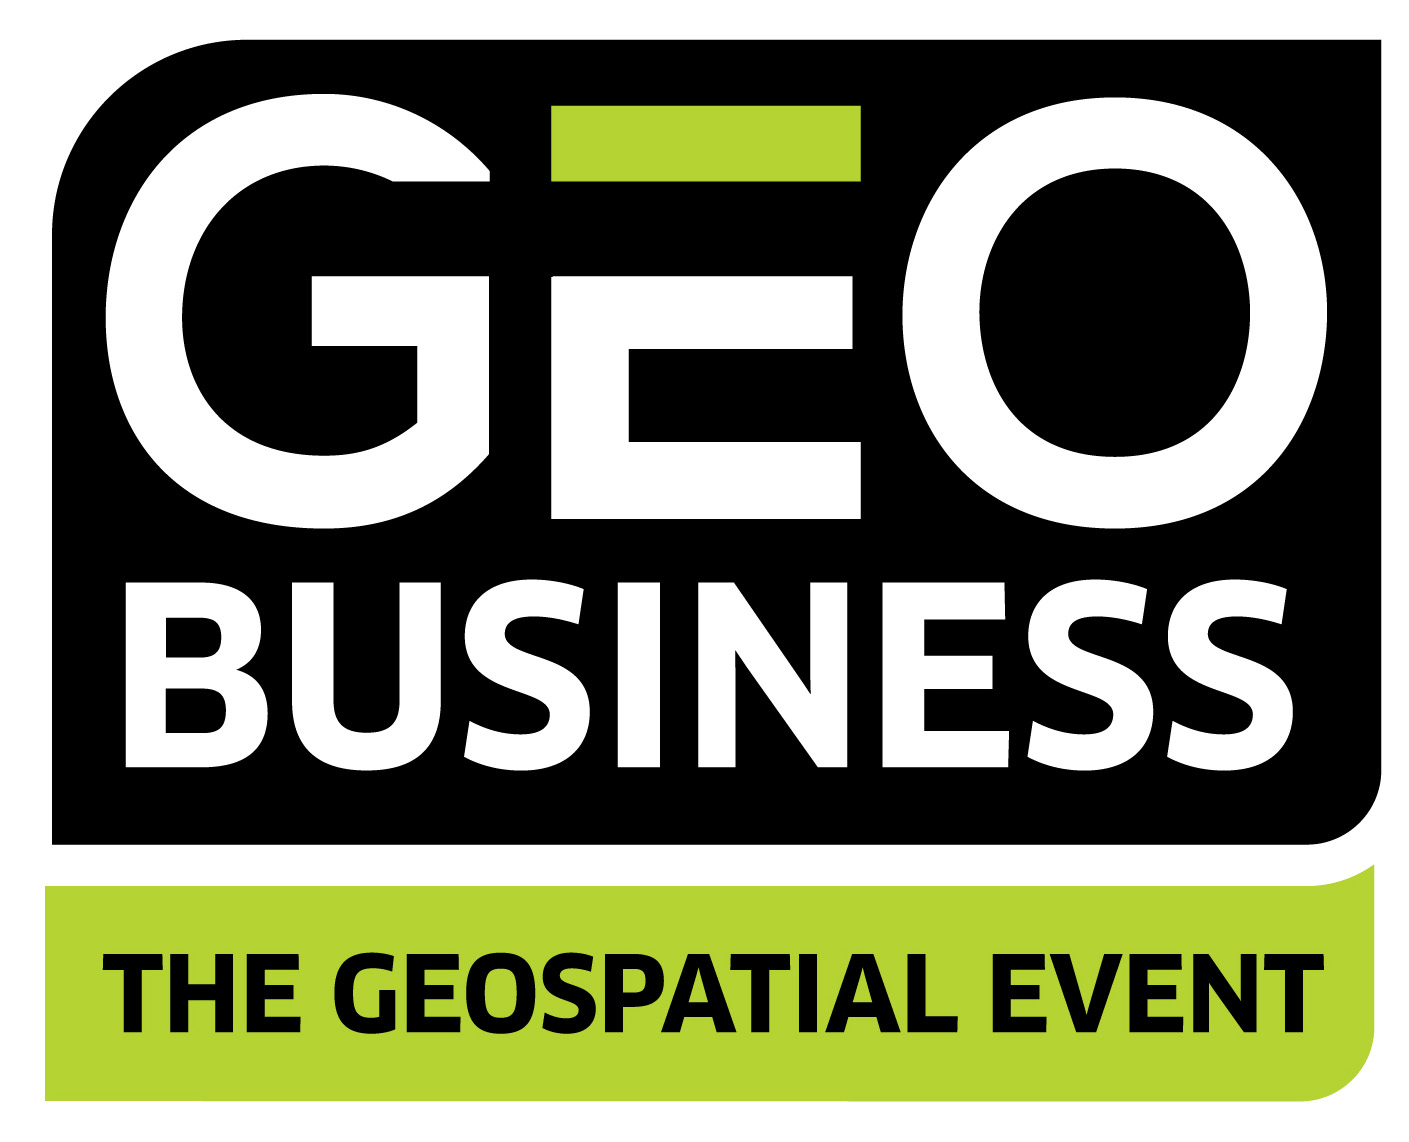 Major New Geospatial Event to launch in London in 2014